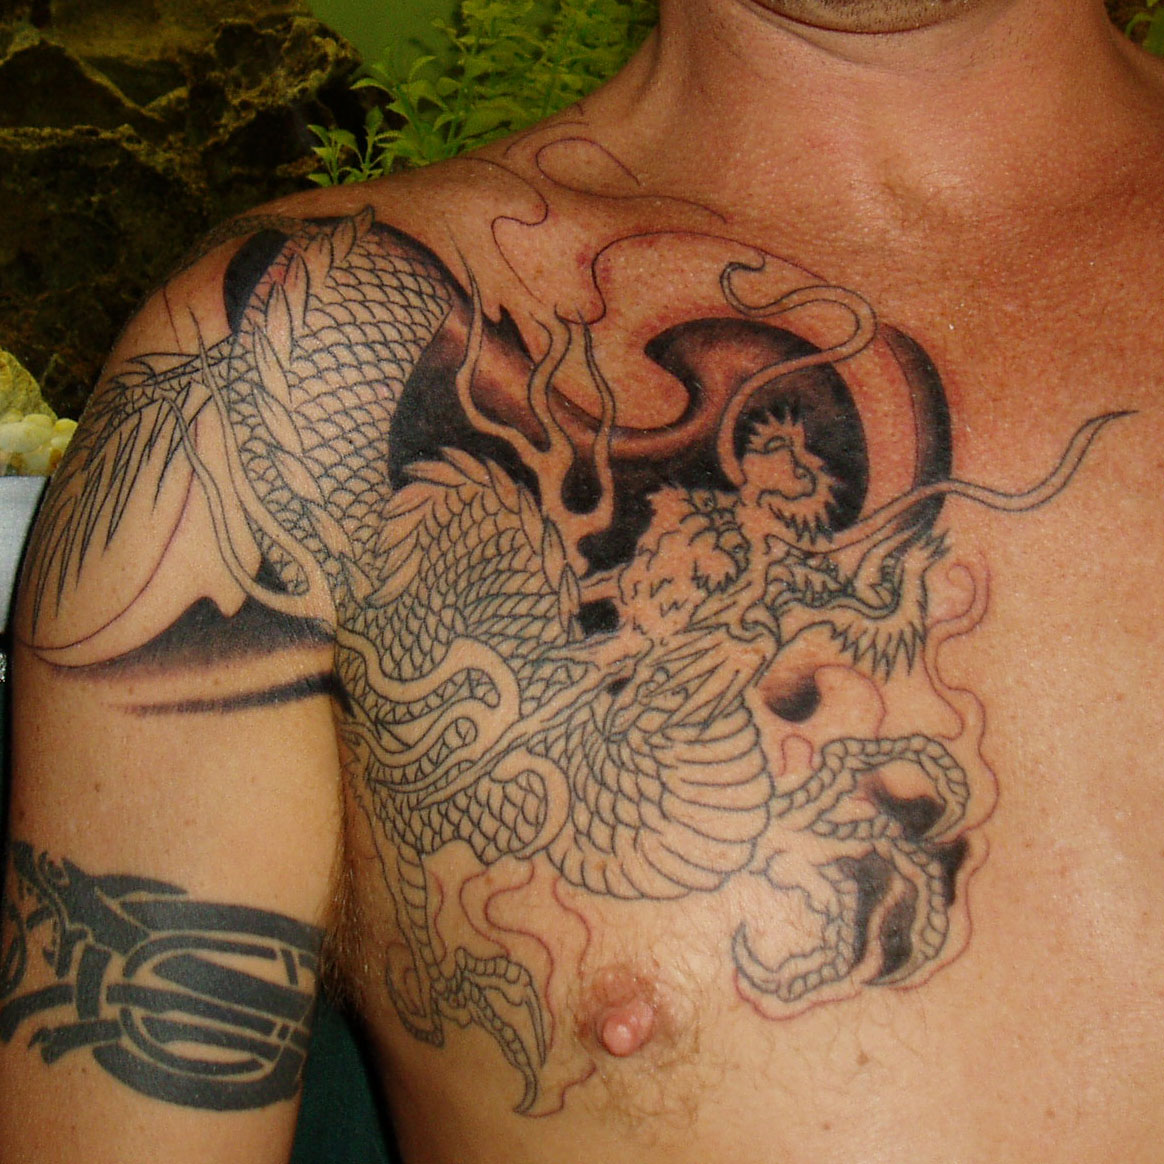 Hot Tattoos- Hottest Tattoo Designs